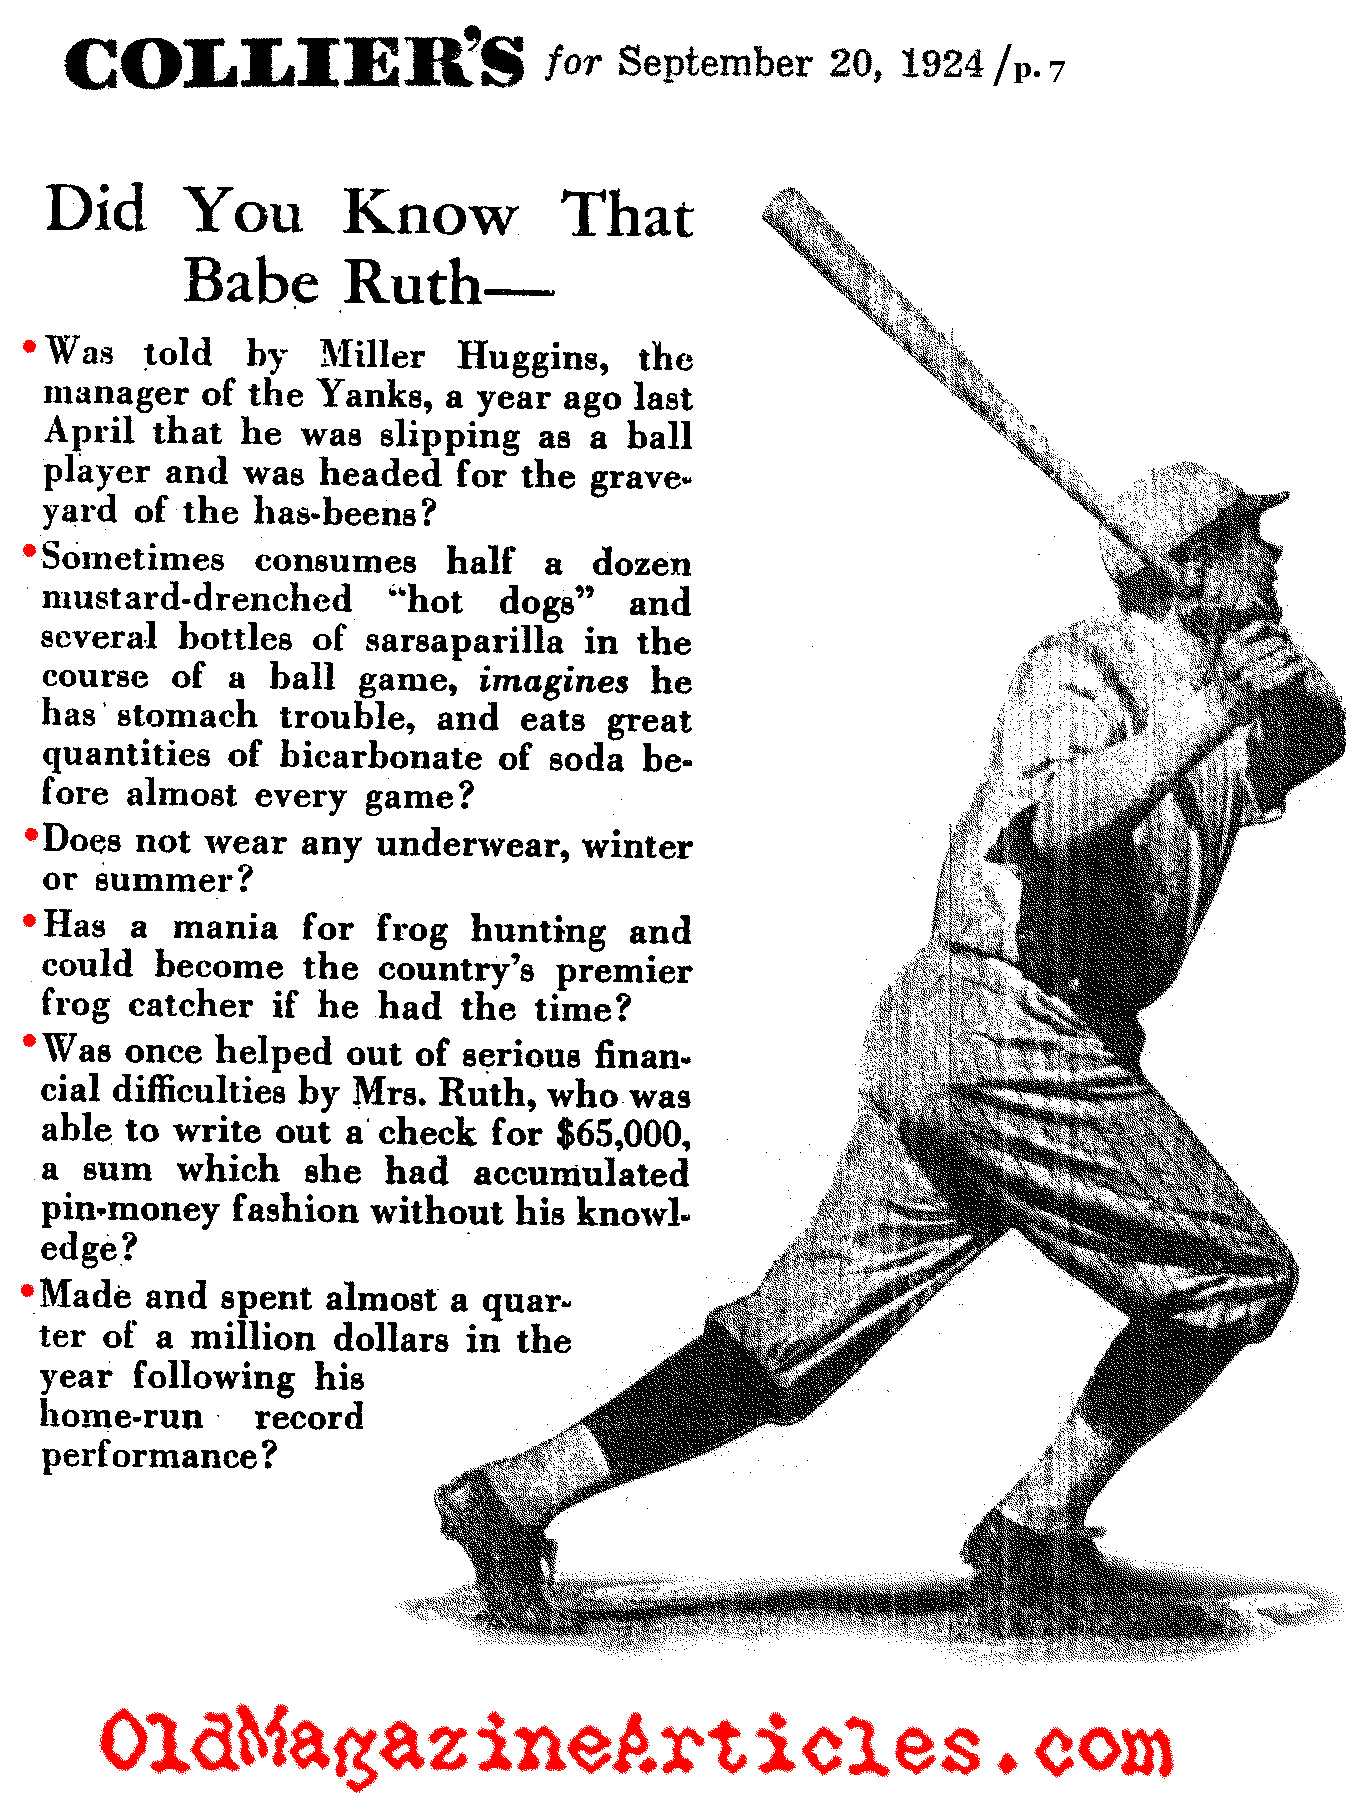 babe ruth essay personal experiences essay introduction welcome to baberuth com the official website of babe ruth